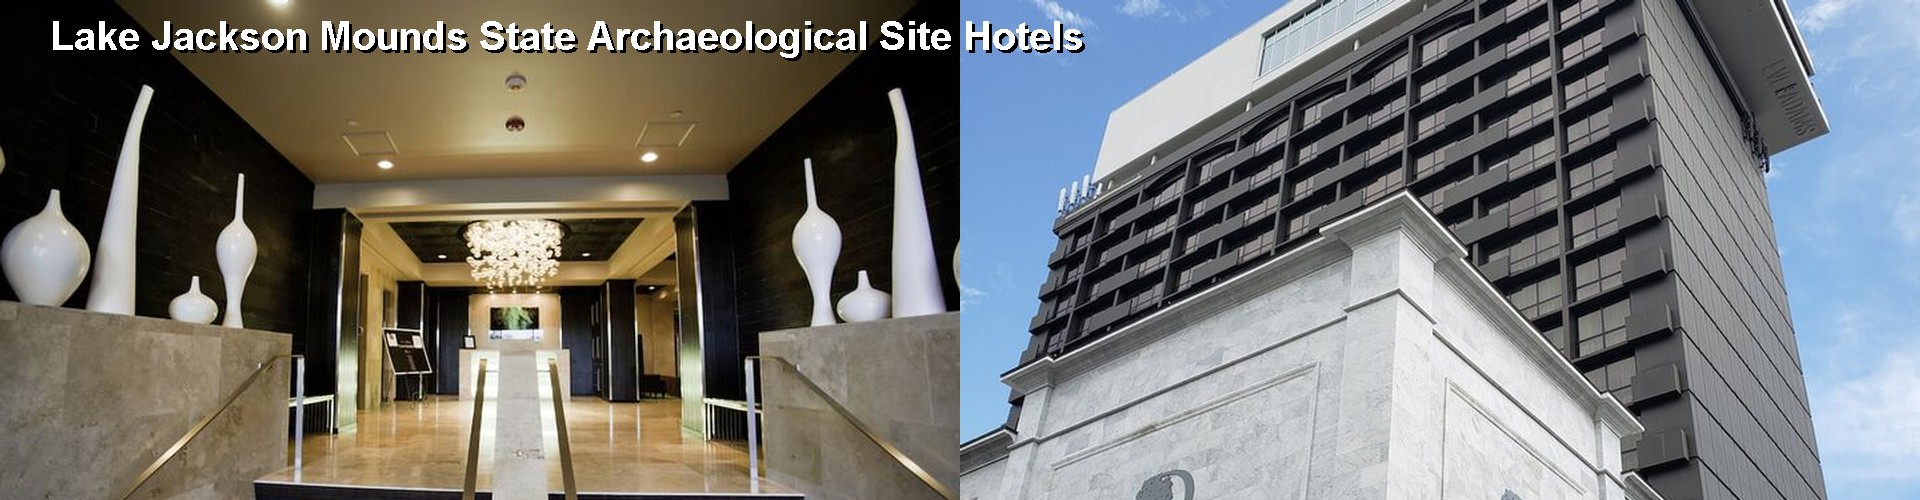 5 Best Hotels near Lake Jackson Mounds State Archaeological Site